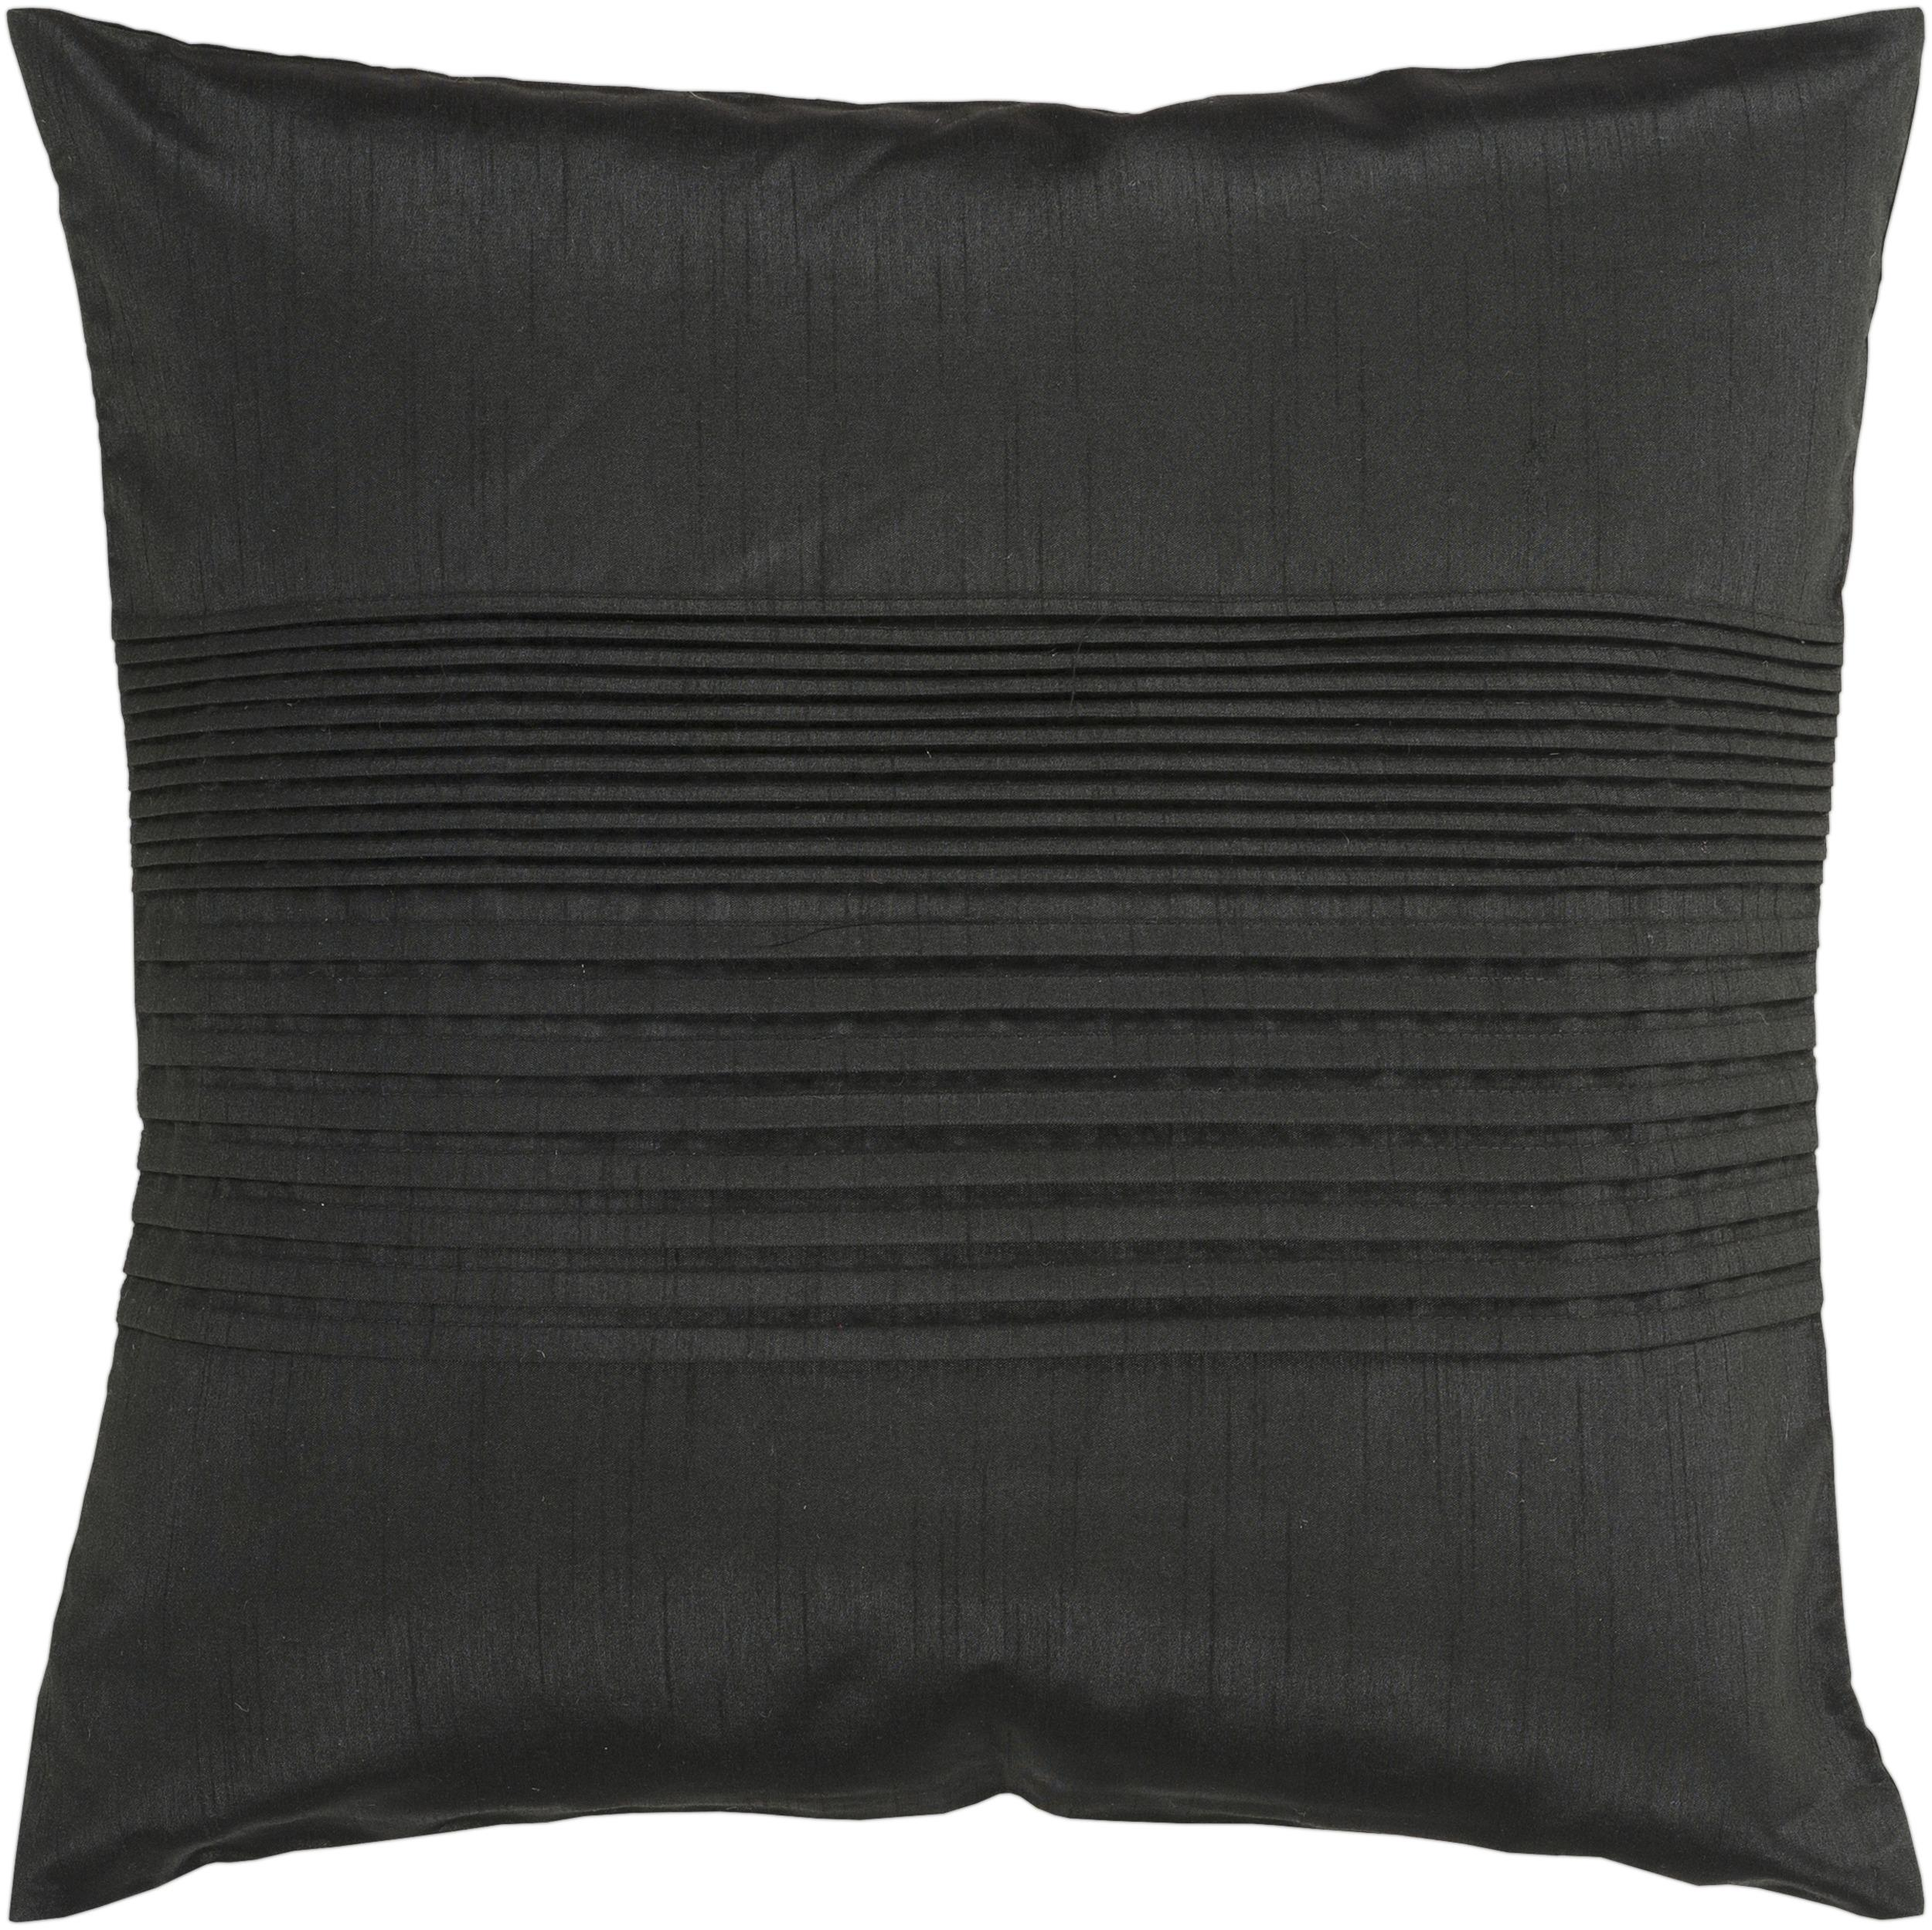 "Surya Pillows 22"" x 22"" Pillow - Item Number: HH027-2222P"